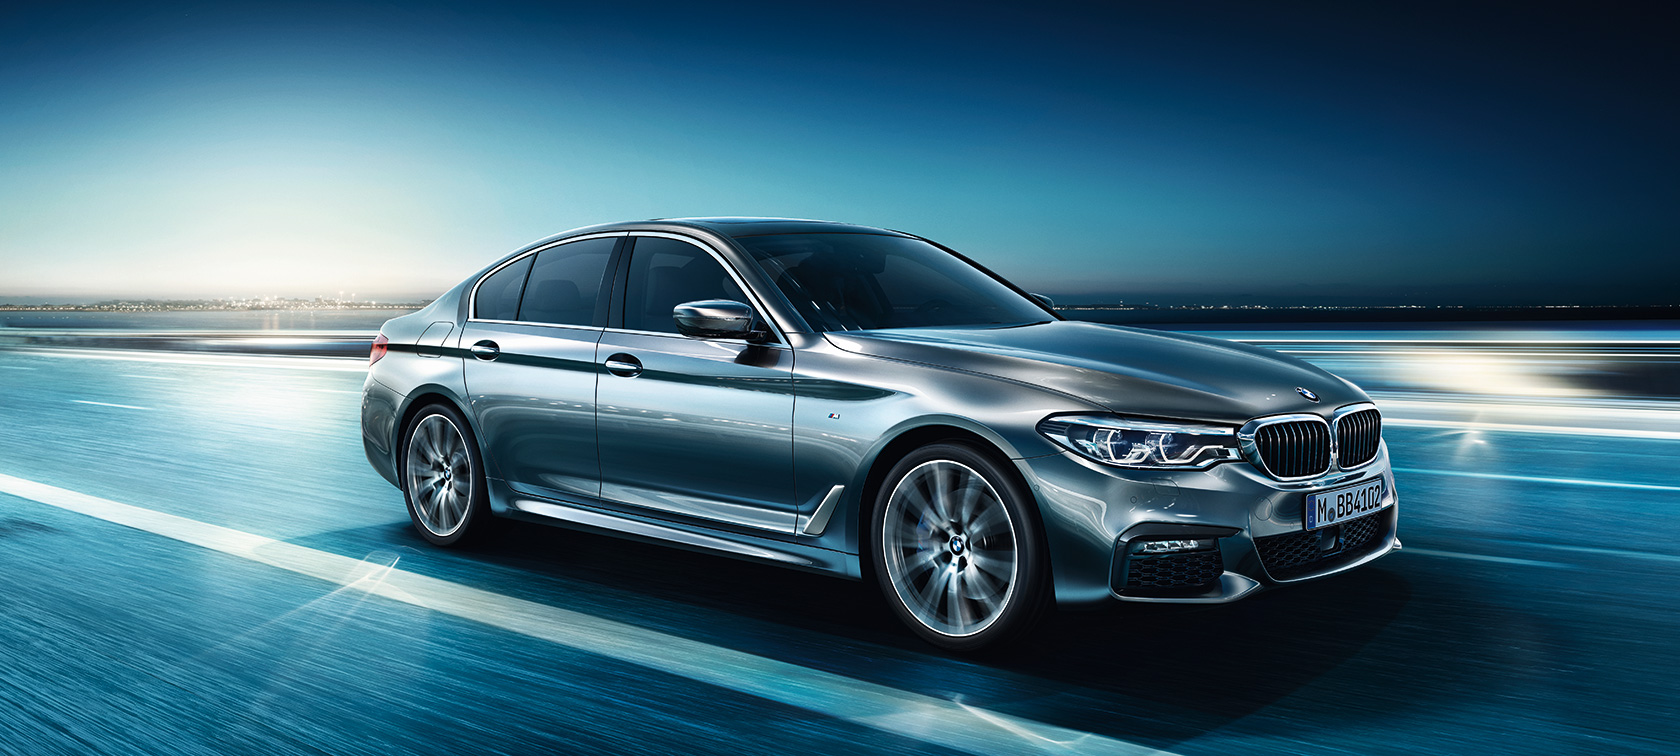 BMW 5 Series Sedan: frontside view of high-performance car.